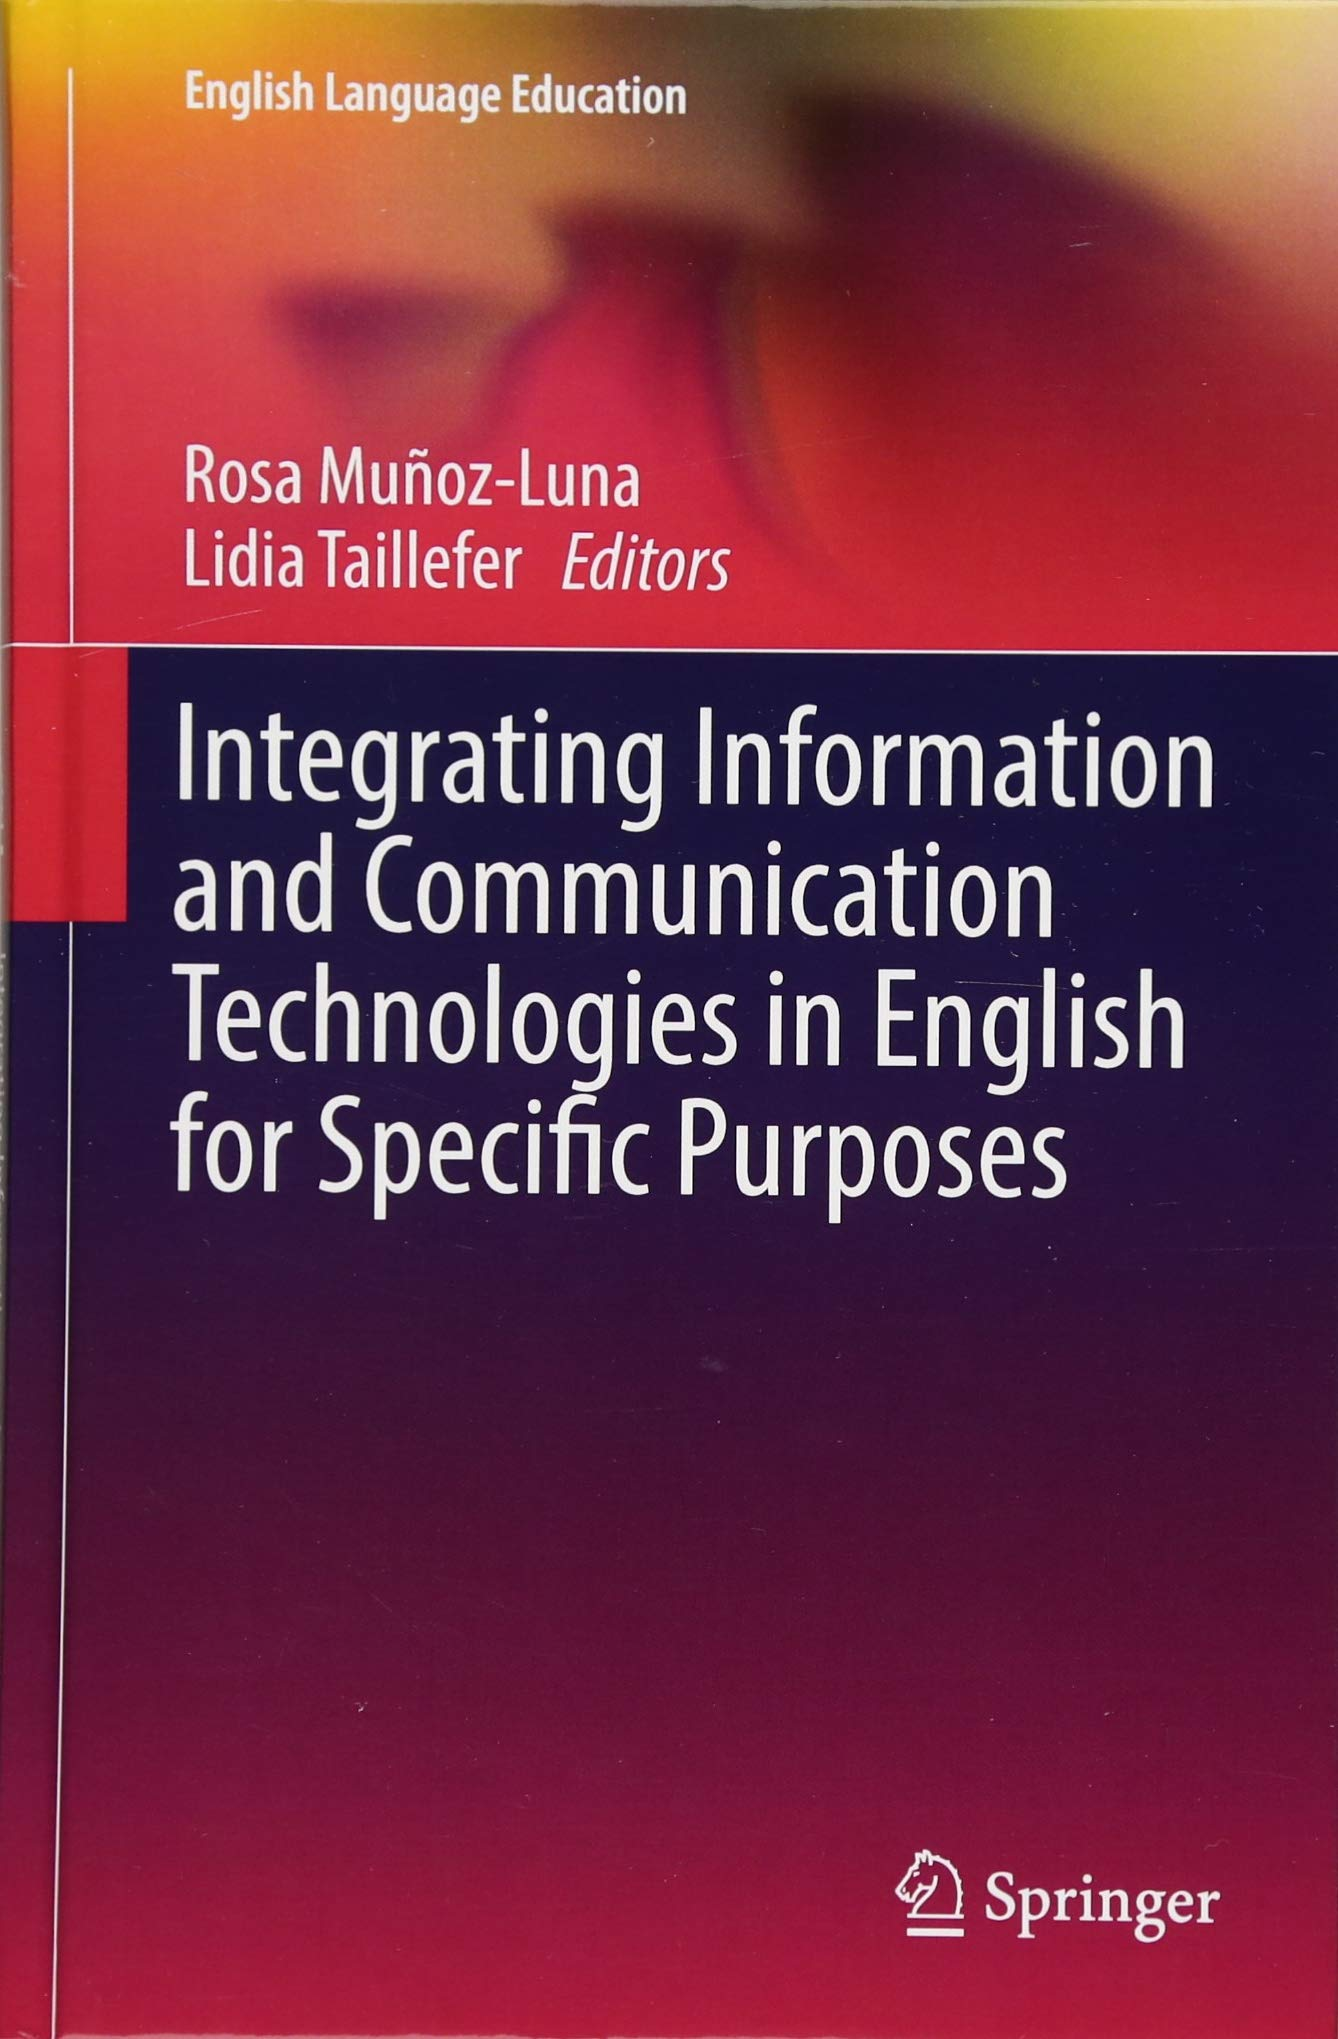 Integrating Information and Communication Technologies in English for Specific Purposes (English Language Education)